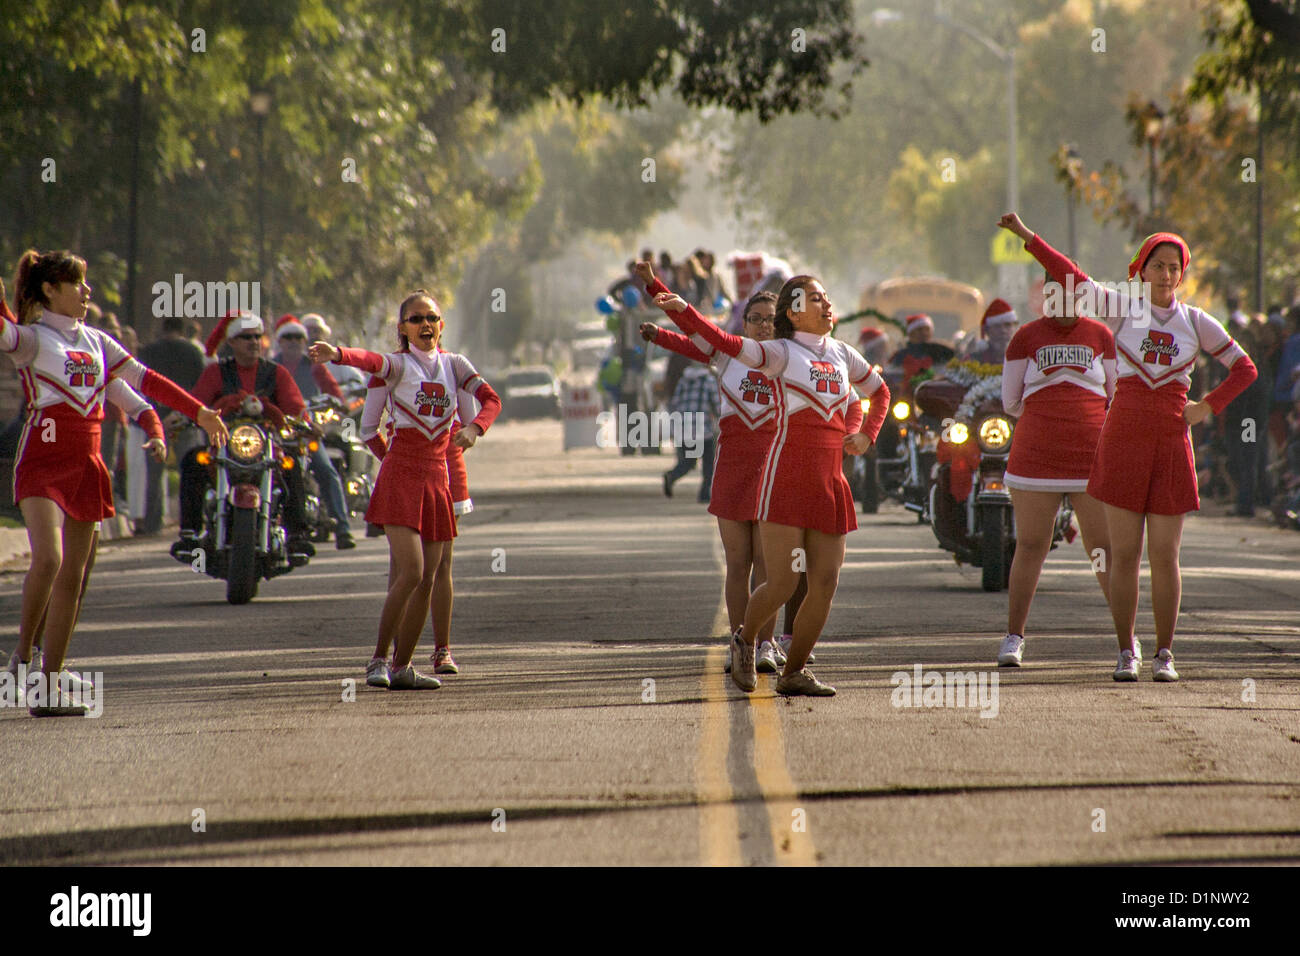 A team of deaf cheerleaders leads a Christmas parade at the California School for the Deaf in Riverside, CA. - Stock Image